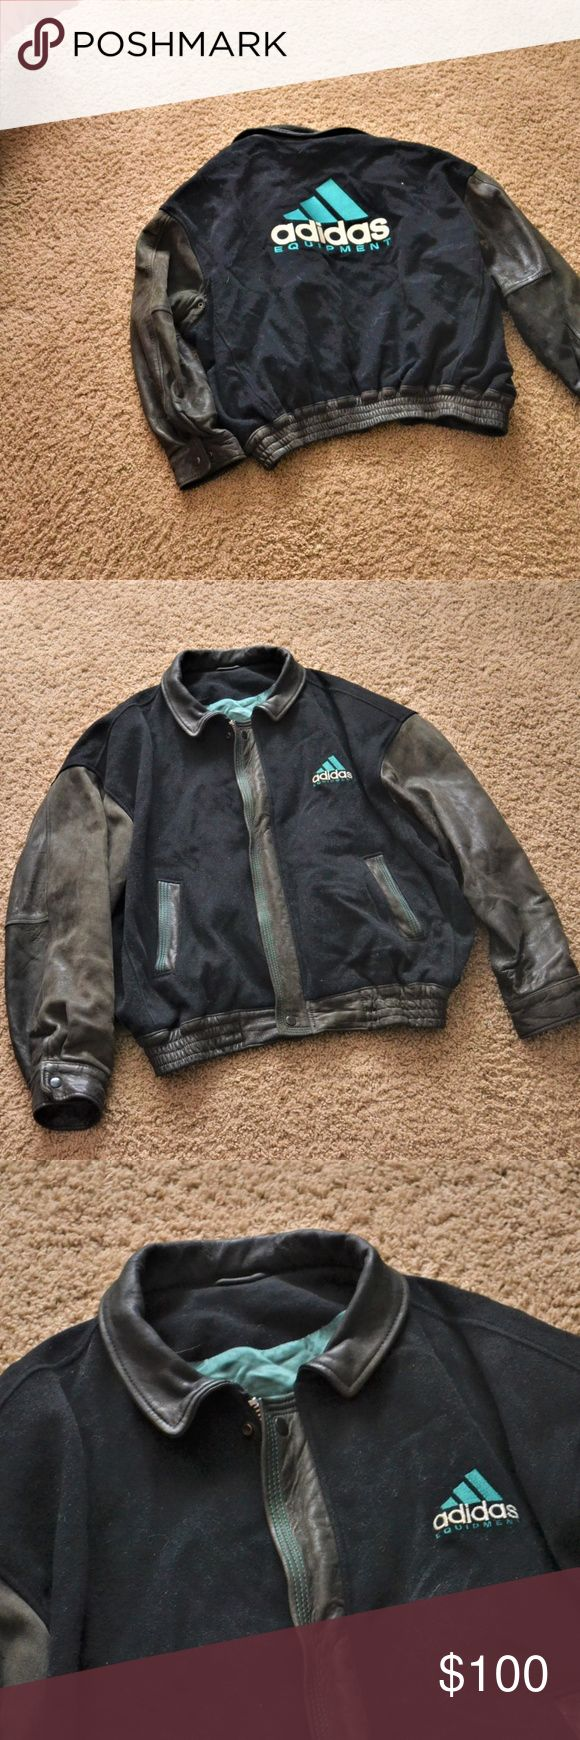 90 s  A D I D A S   L E A T H E R  J A C K E T // Amazing Vintage Adidas Leather Jacket  Genuine leather  90s   Mens size XL   ask for measurements adidas Jackets & Coats Bomber & Varsity